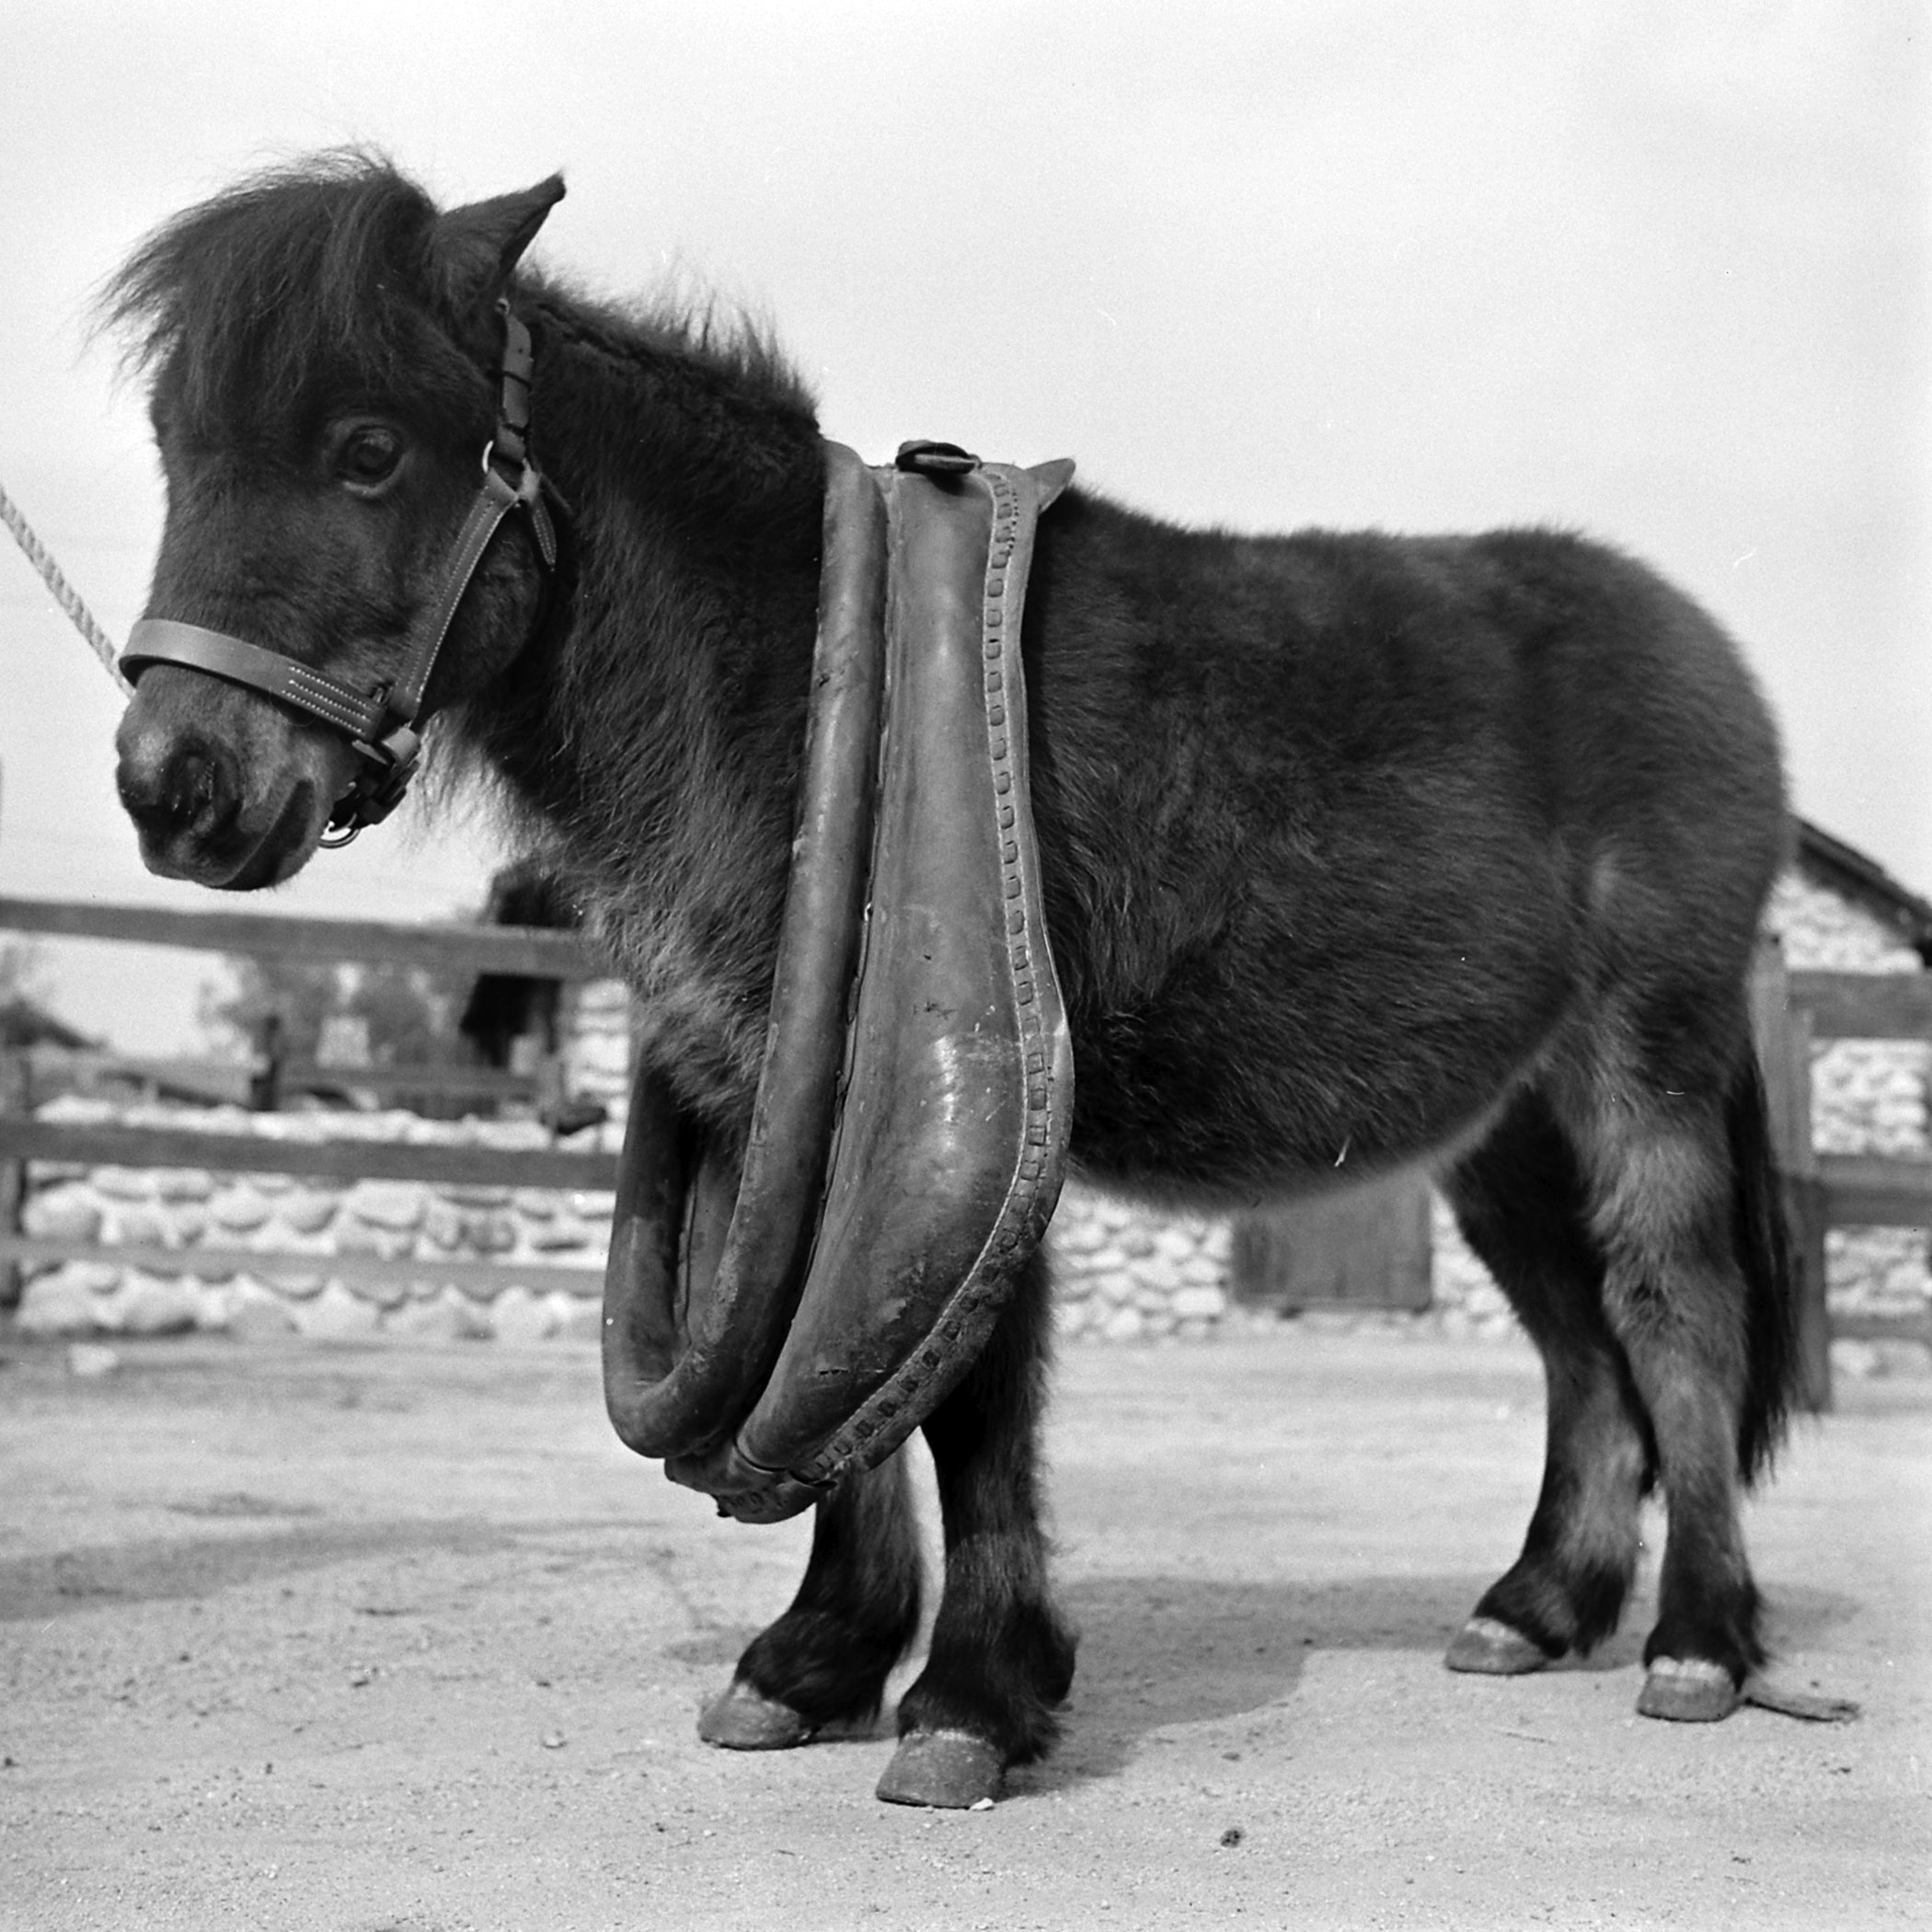 <b>Caption from LIFE.</b> Ronnie stands uncomfortably with normal horse collar. He eats only four pounds of hay a day compared to 40 pounds for draft horse.